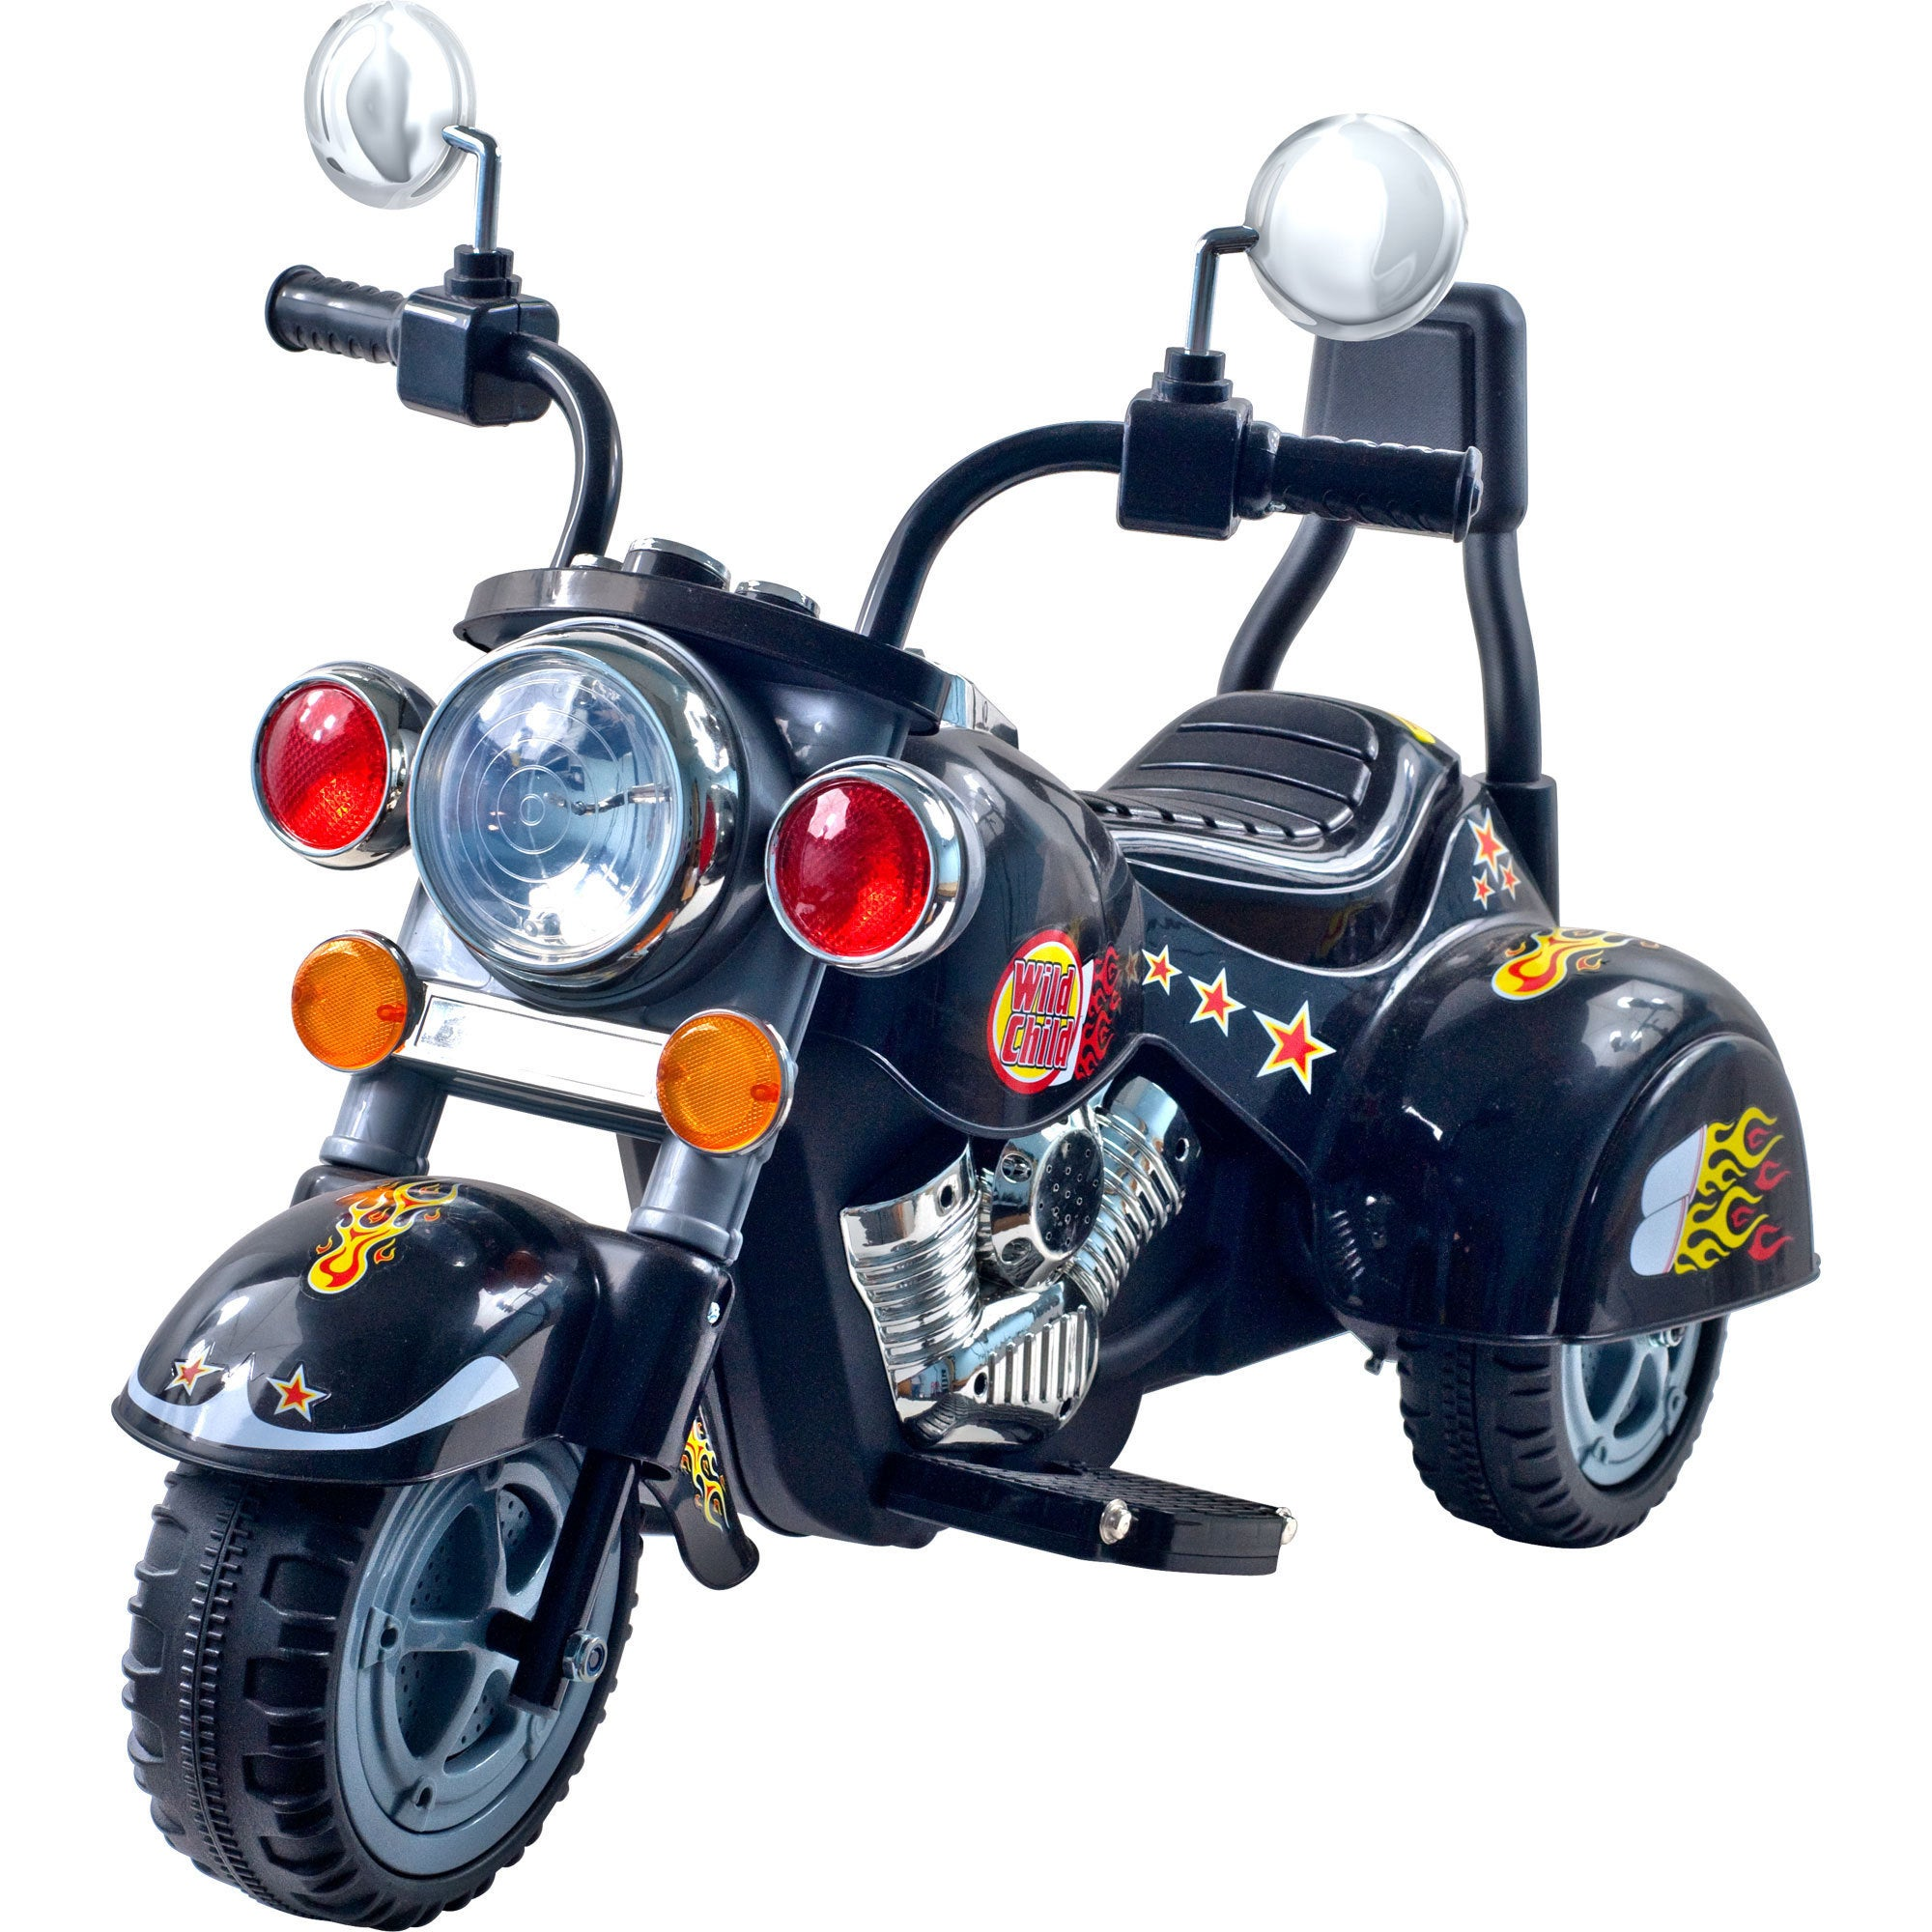 Trademark 3 Wheel Chopper Motorcycle, Ride on Toy for Kid...